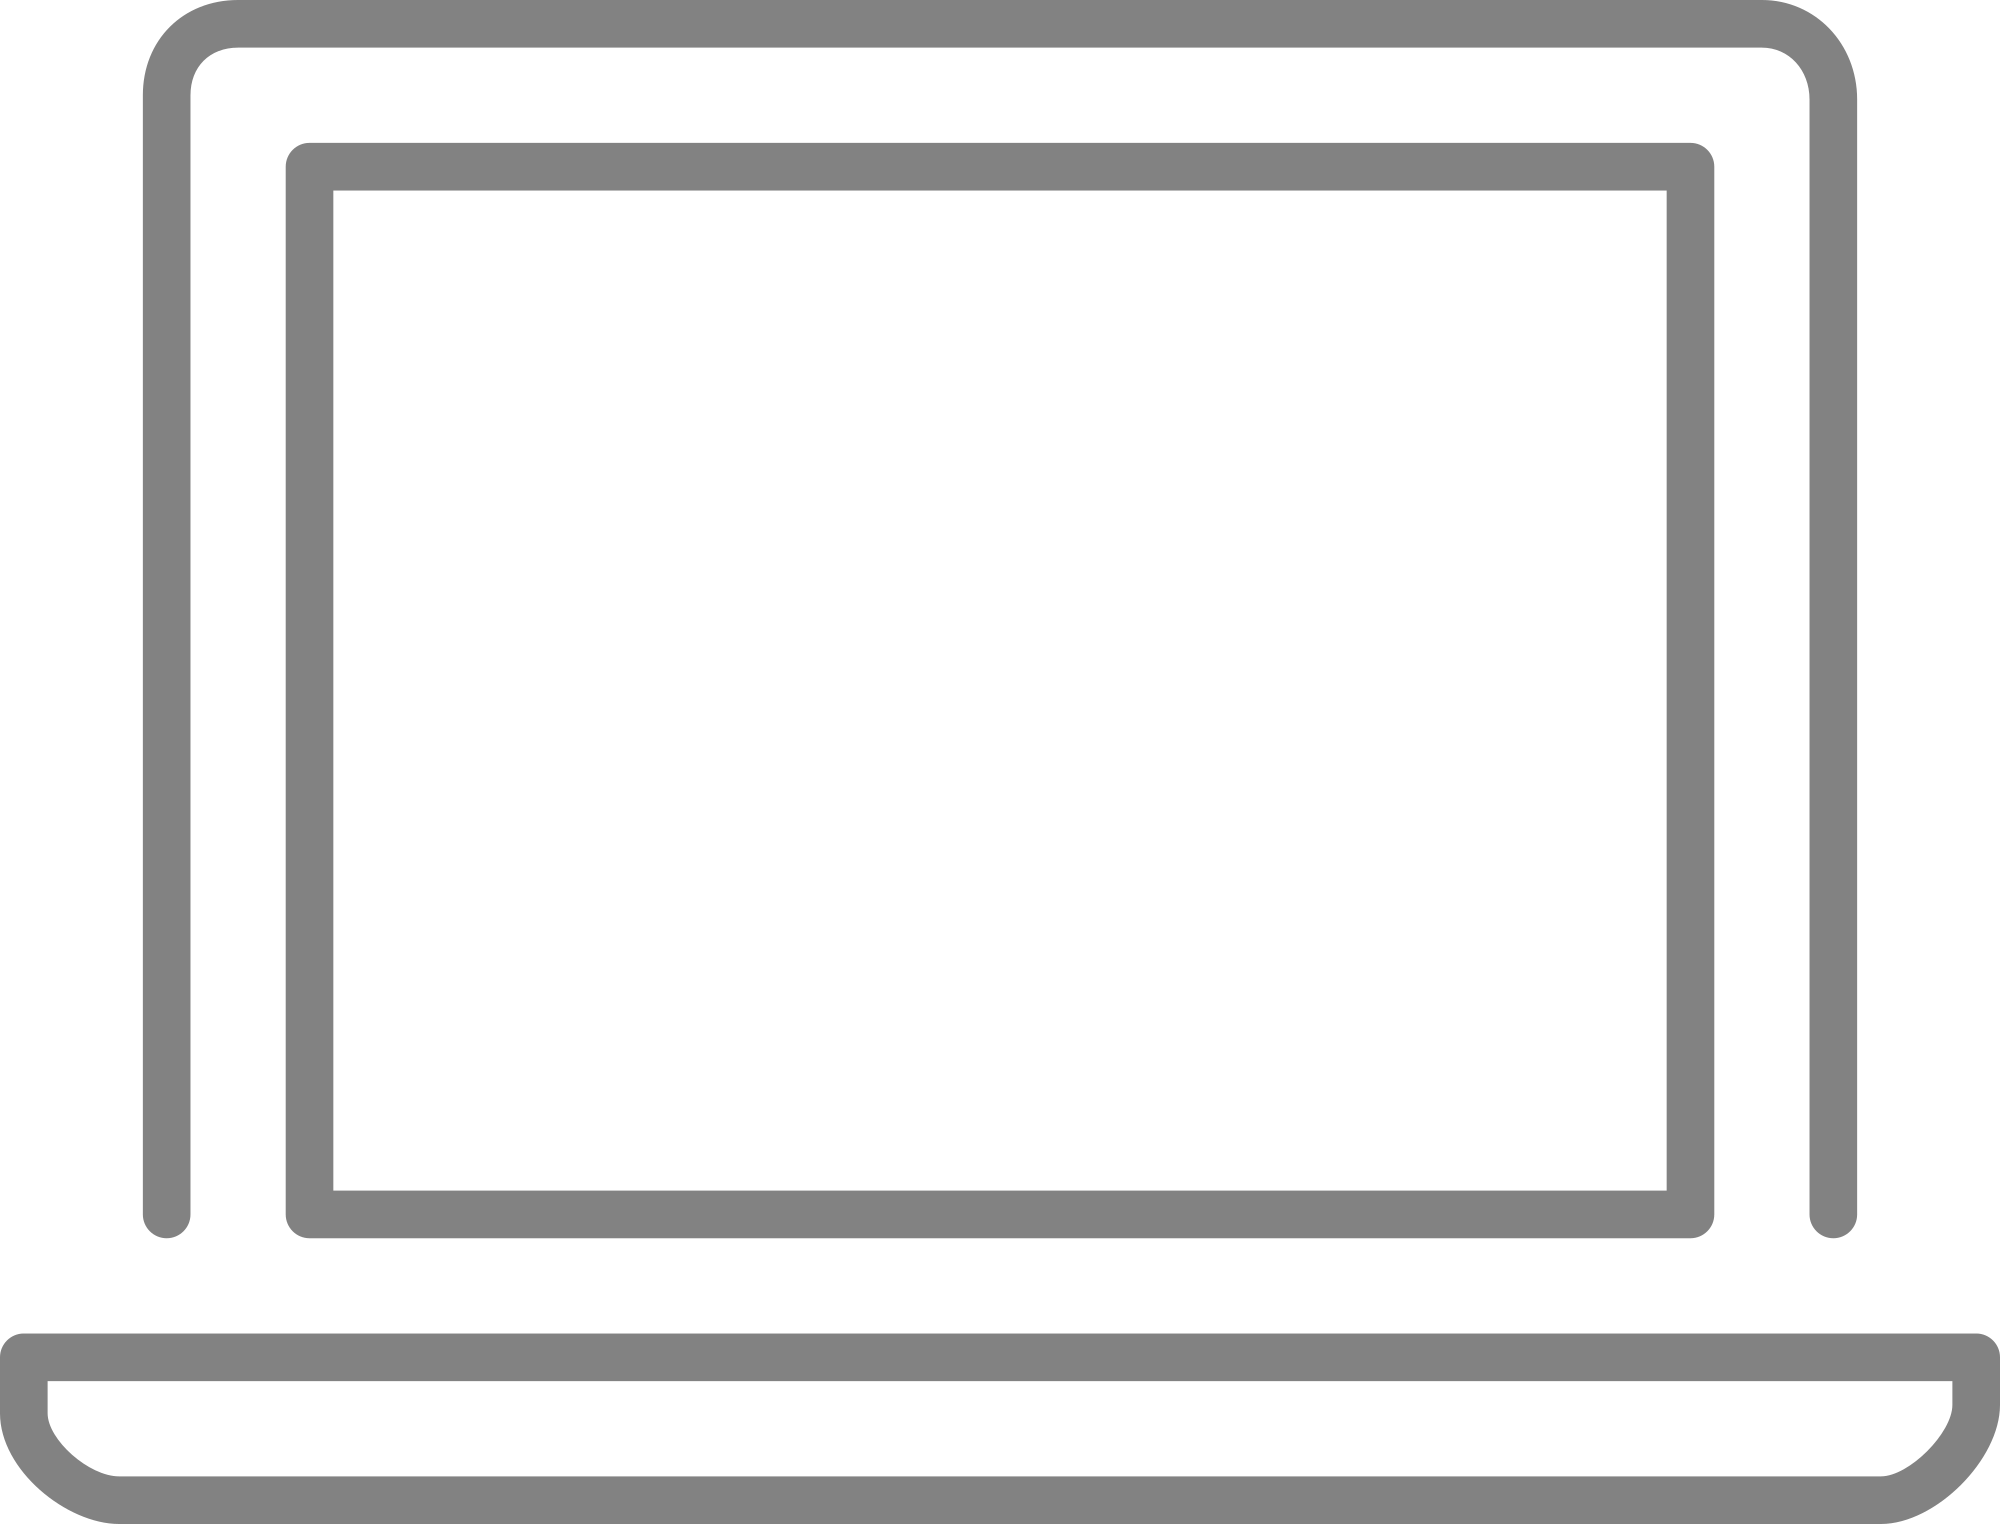 Laptop svg art png. File line style icons